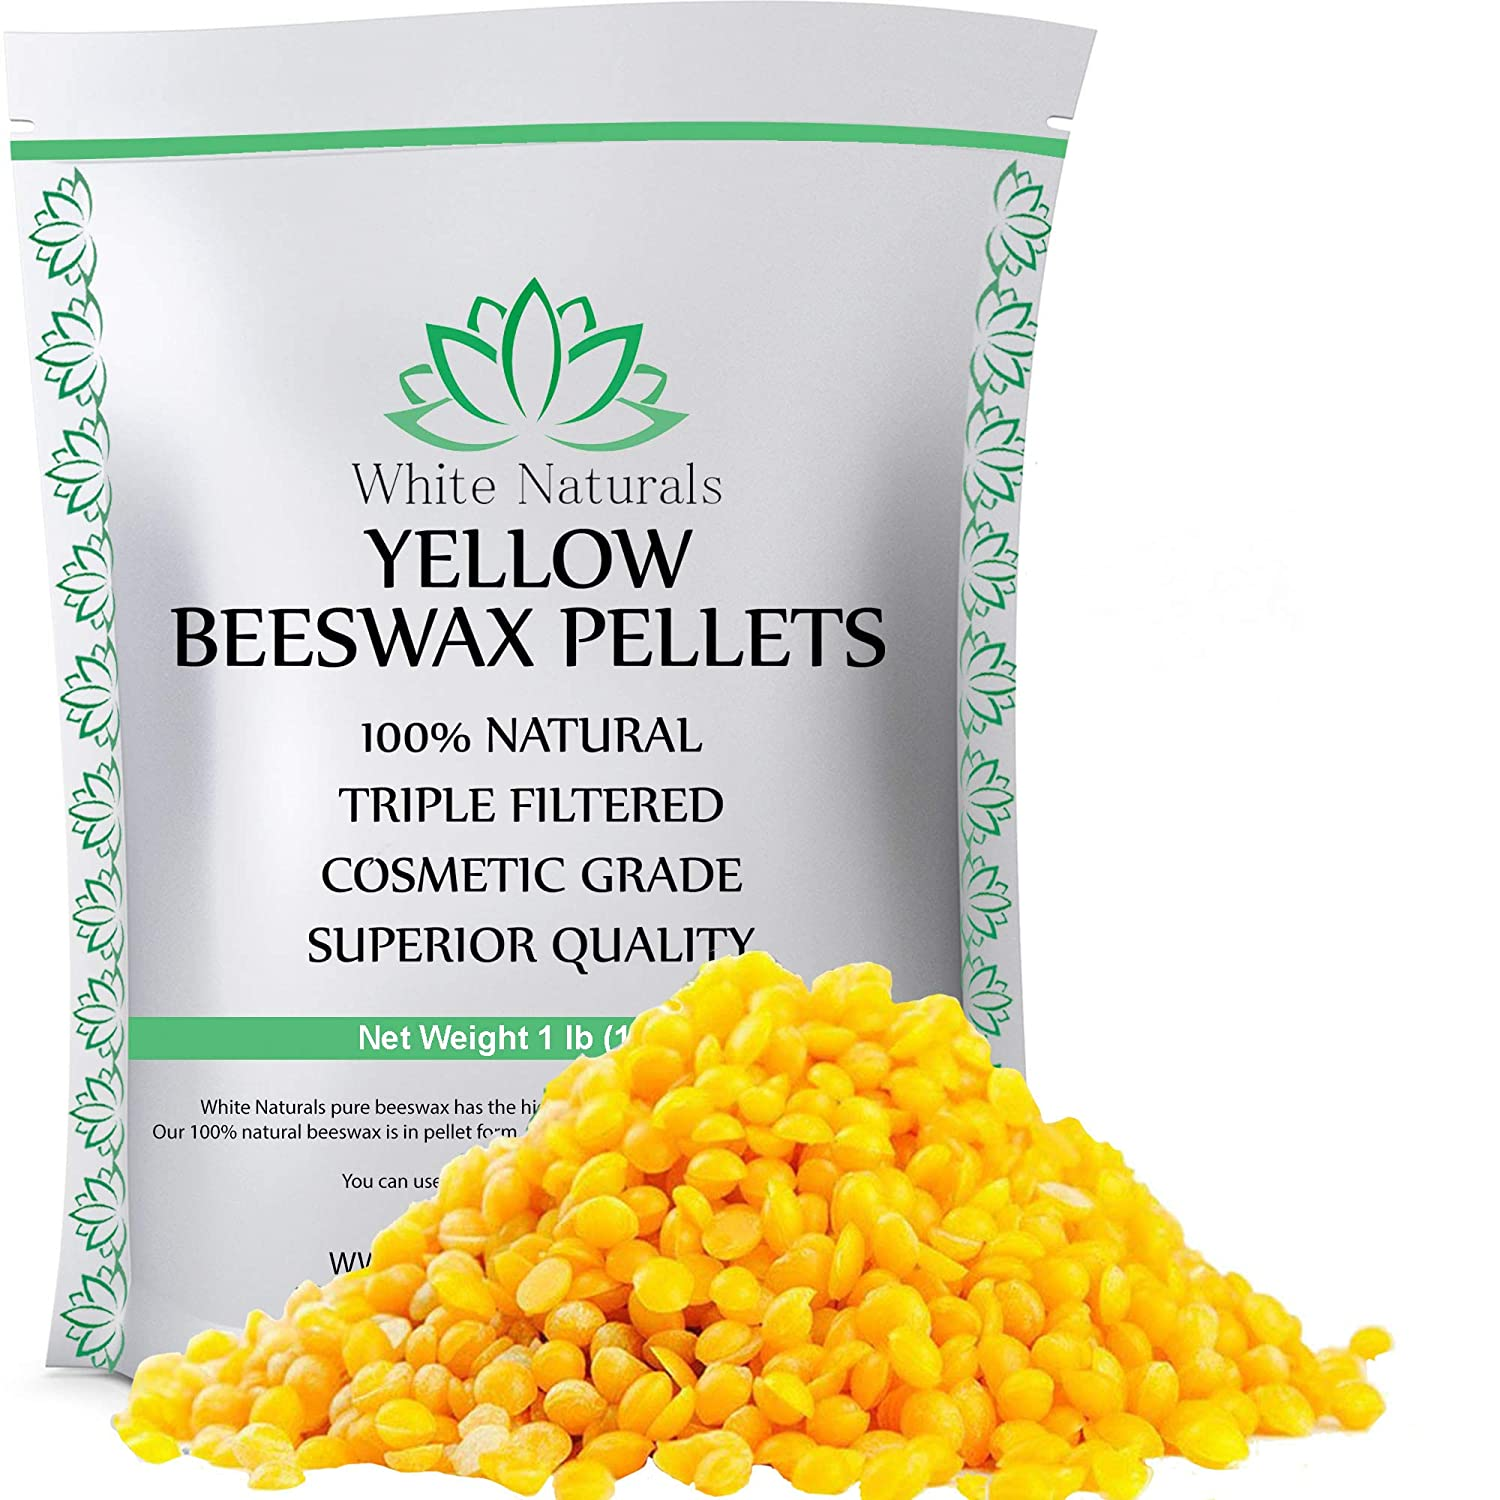 Amazon Com Beeswax Pellets 1 Lb Yellow Pure Natural Cosmetic Grade Bees Wax Pastilles Triple Filtered Great For Diy Projects Lip Balms Lotions Candles By White Naturals